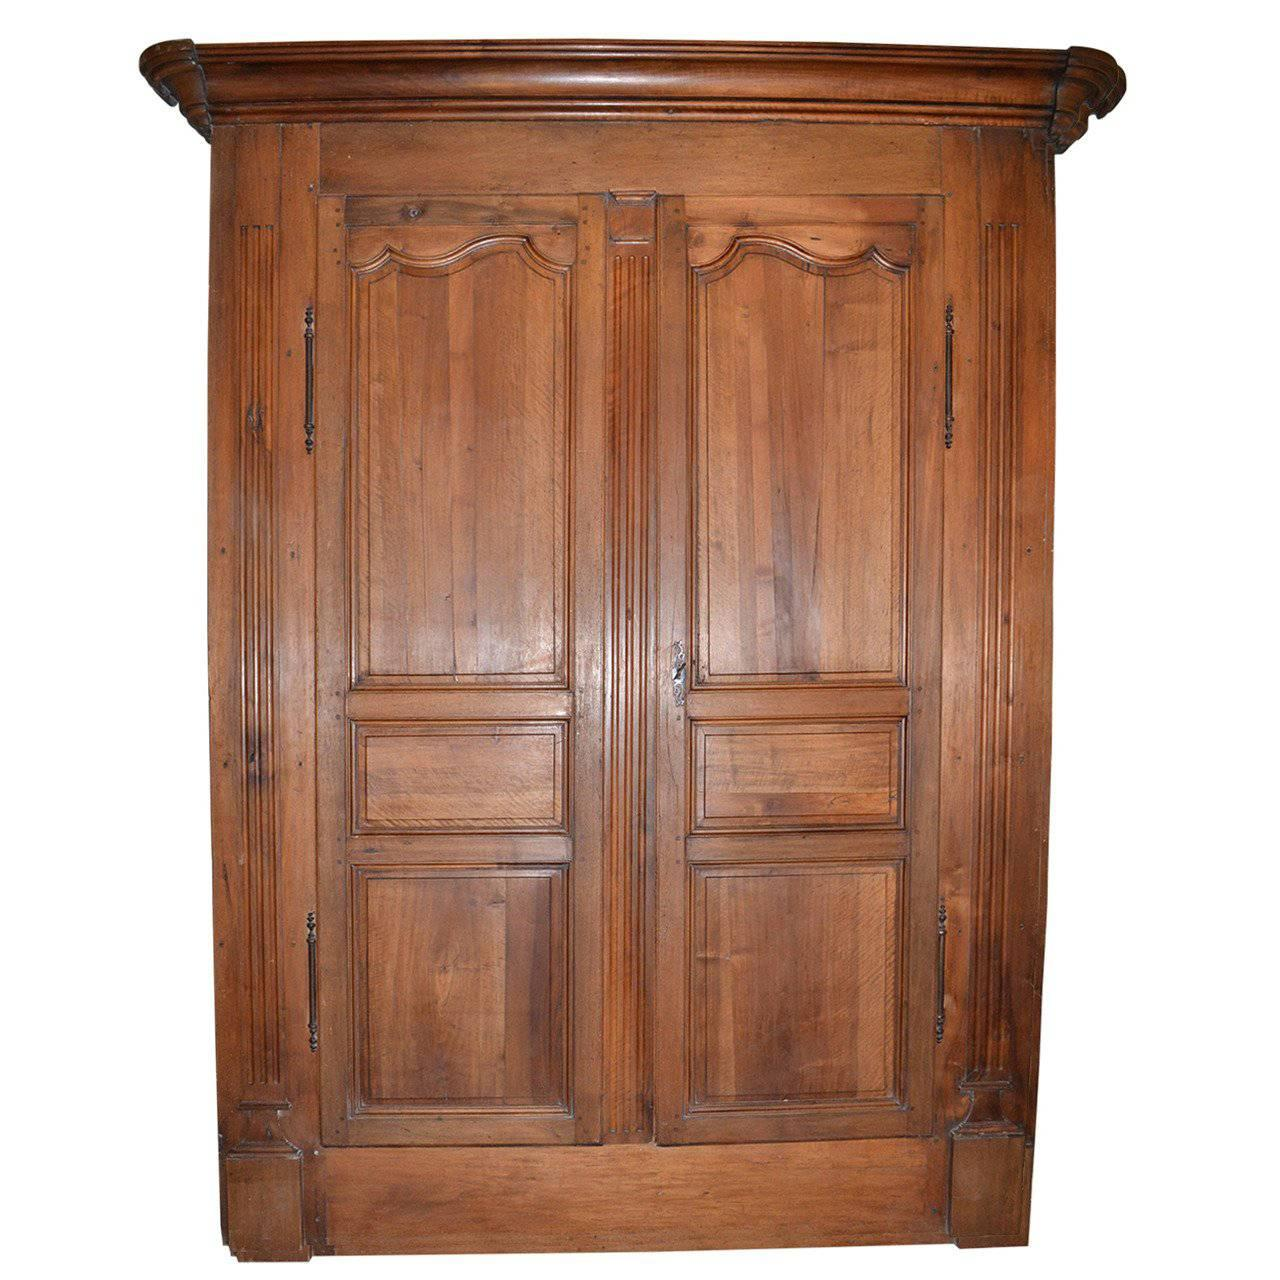 Antique Walnut French Armoire Doors with Original Frame Crown and Hardware  sc 1 st  1stDibs & Antique and Vintage Doors and Gates - 1172 For Sale at 1stdibs